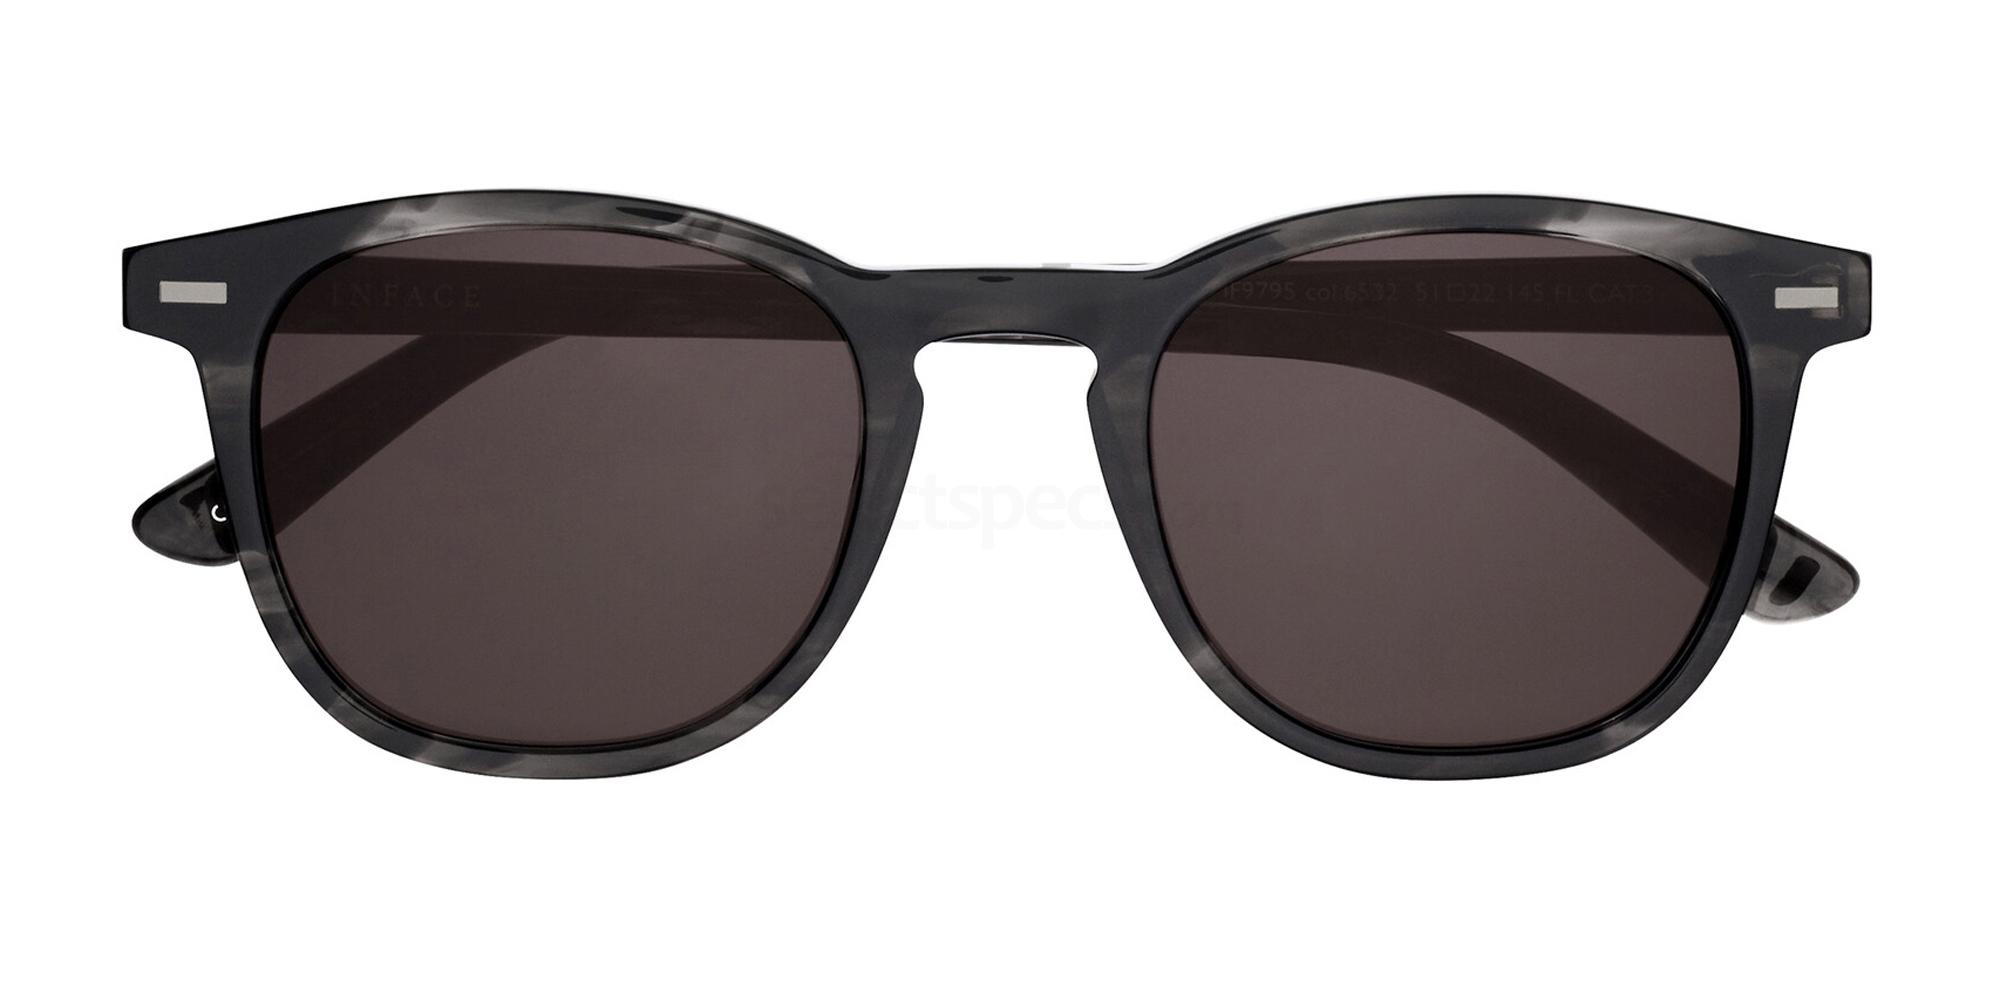 6532 IF9795 Sunglasses, Inface in Love